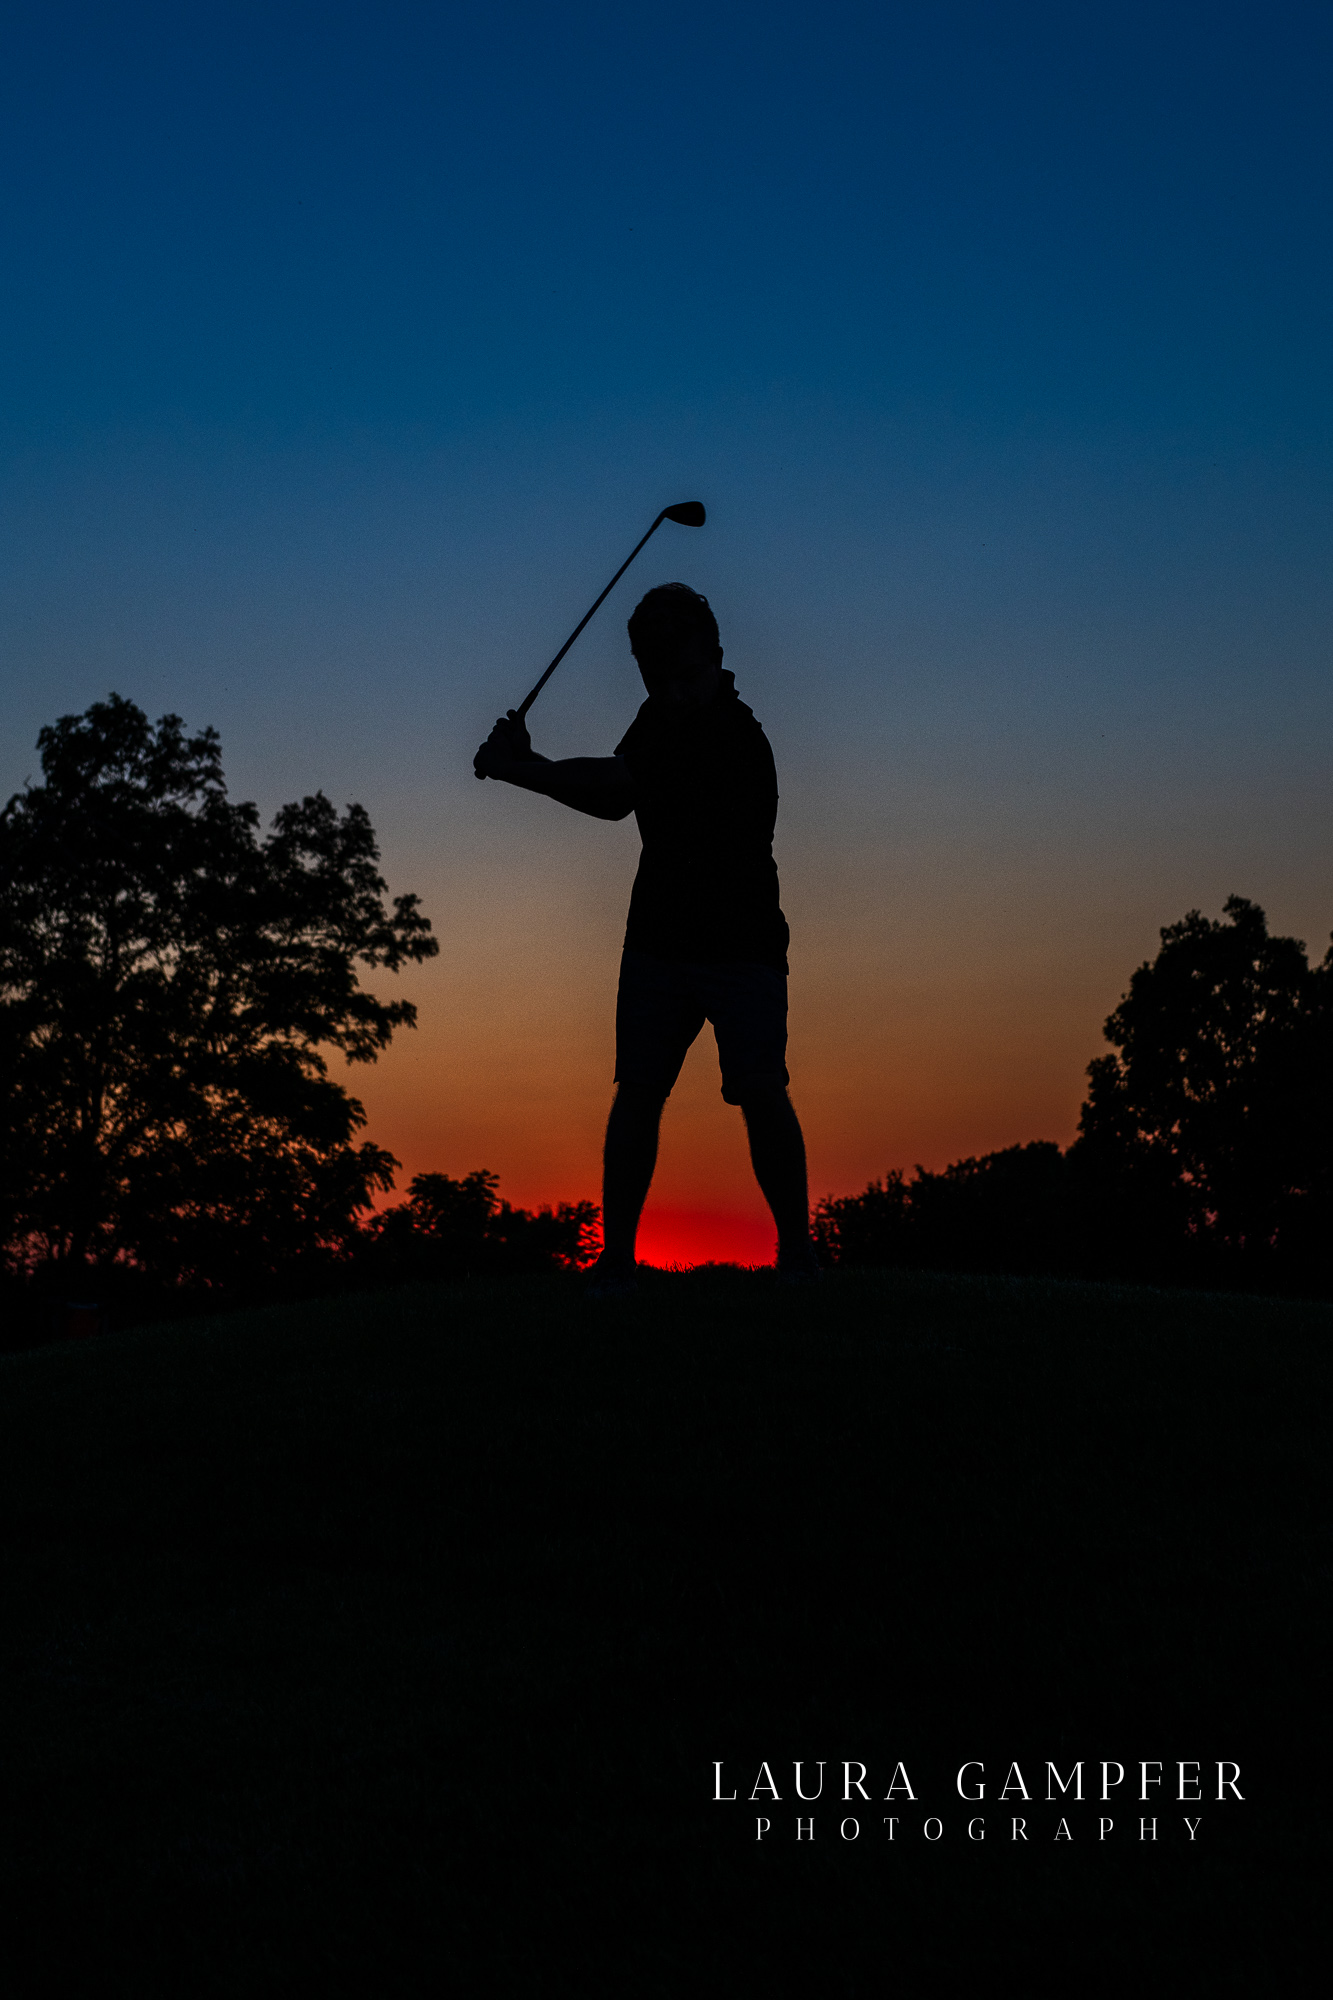 illinois-golf-photography-laura-gampfer